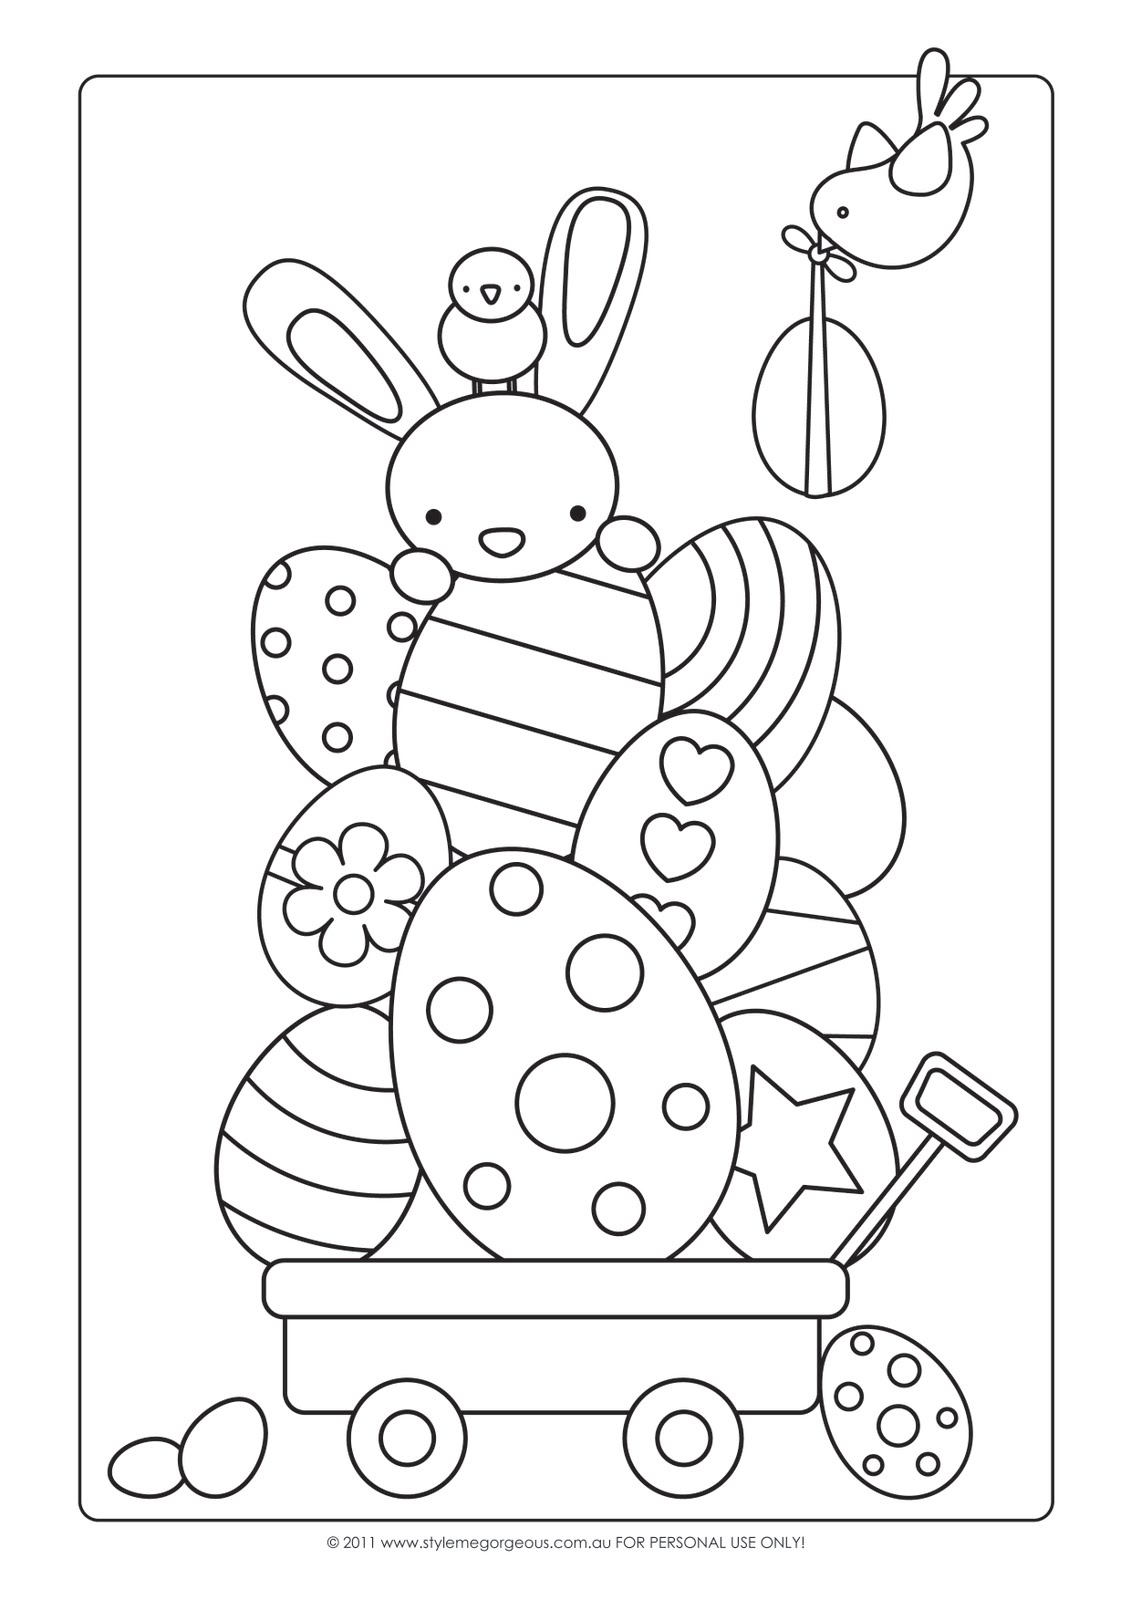 Style Me Gorgeous: FREE Easter Colour-in Page | coloring sheets easter printables